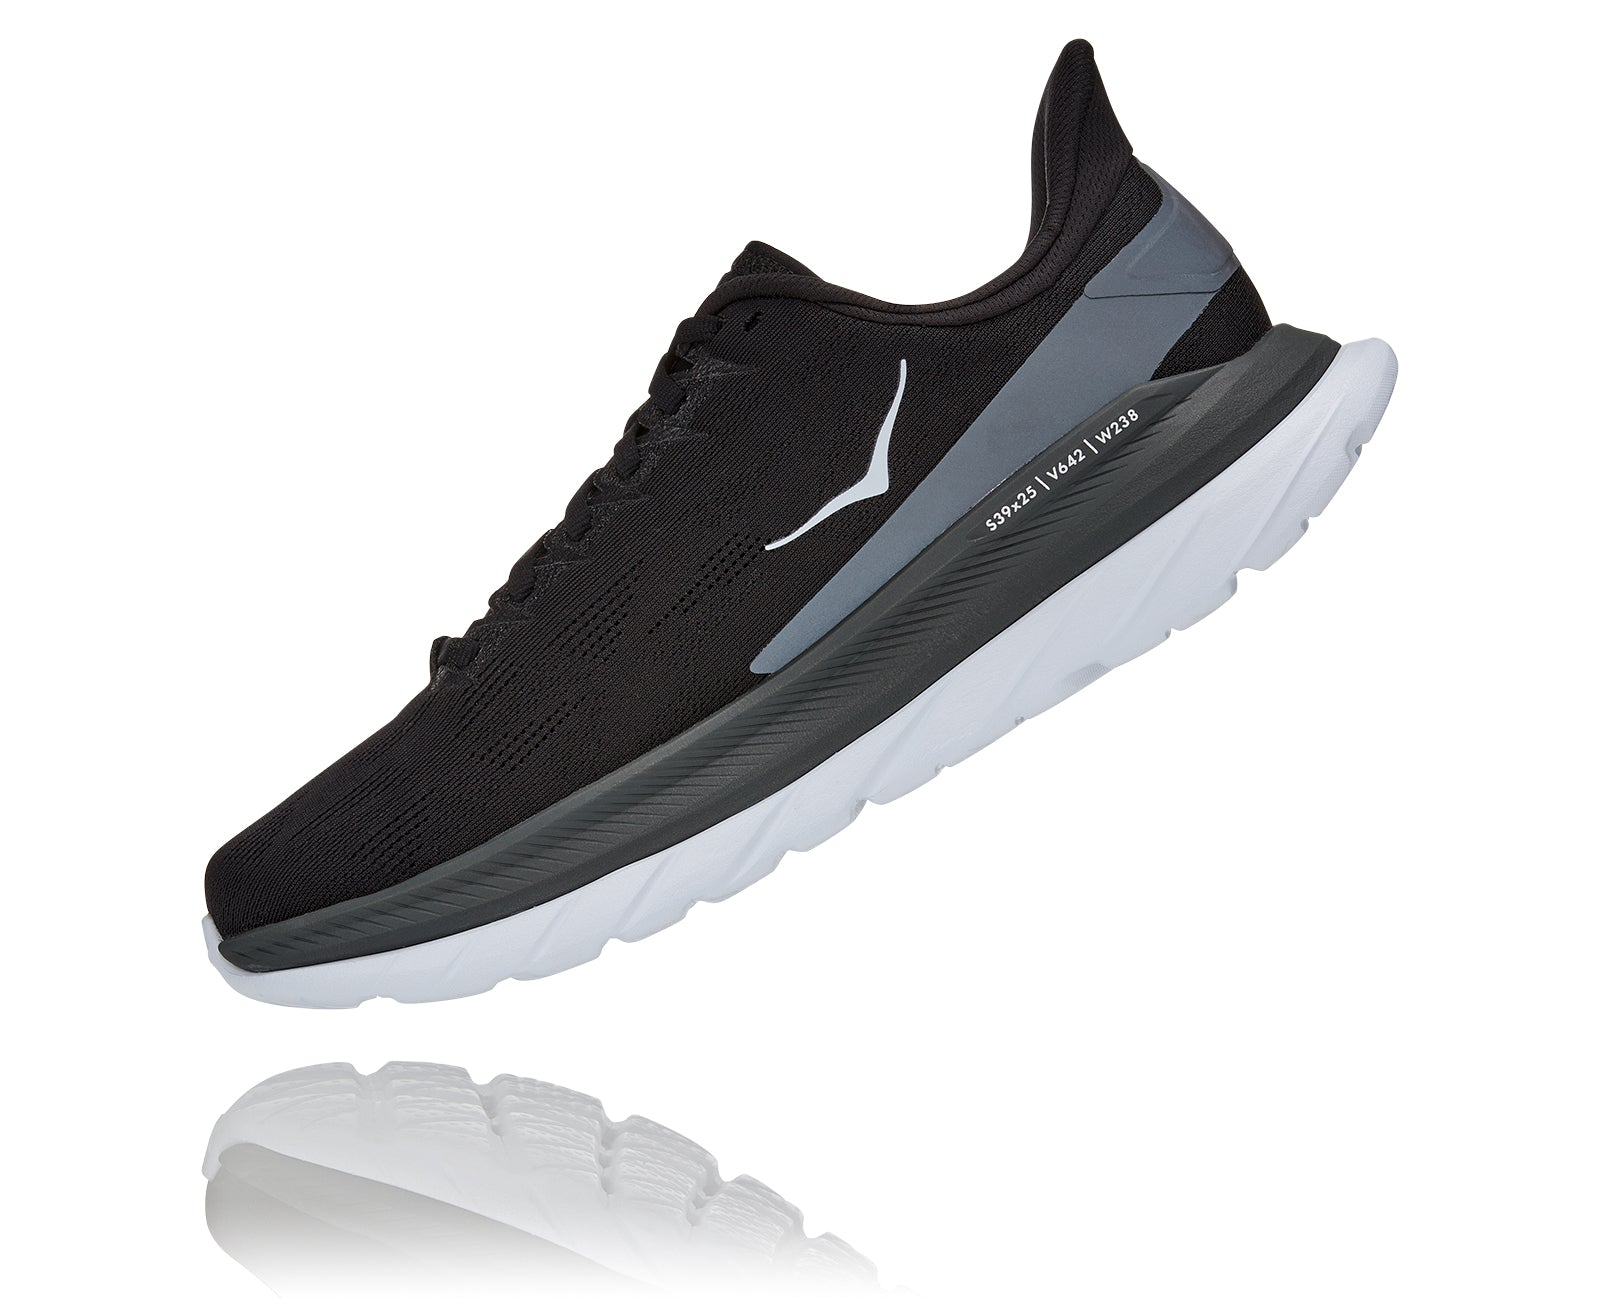 Men's Mach 4 (BDSD - Black/Dark Shadow)